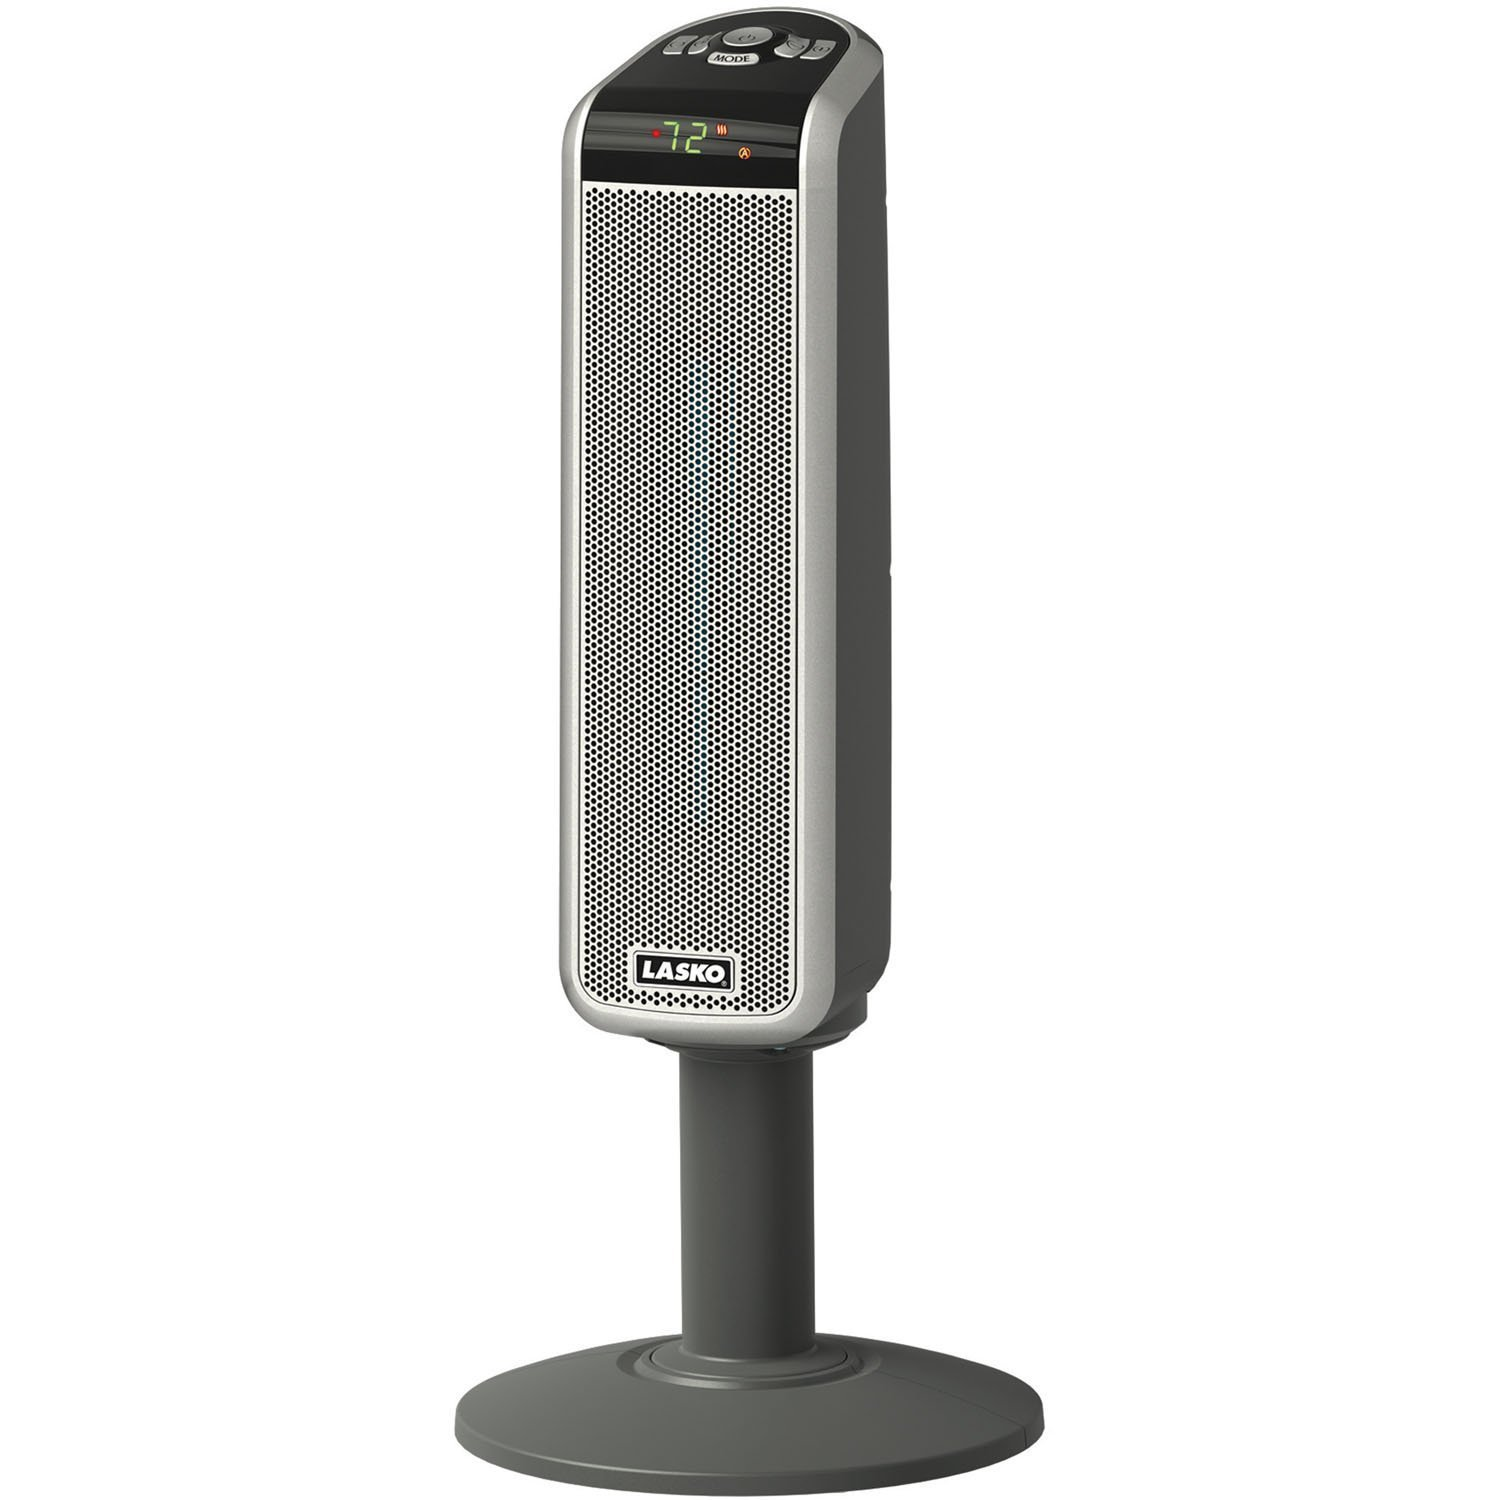 Get Quotations · Lasko COOL TOUCH 1500 Watt Digital Ceramic Tower Heater  With Widespread Oscillation U0026 Digital Display With